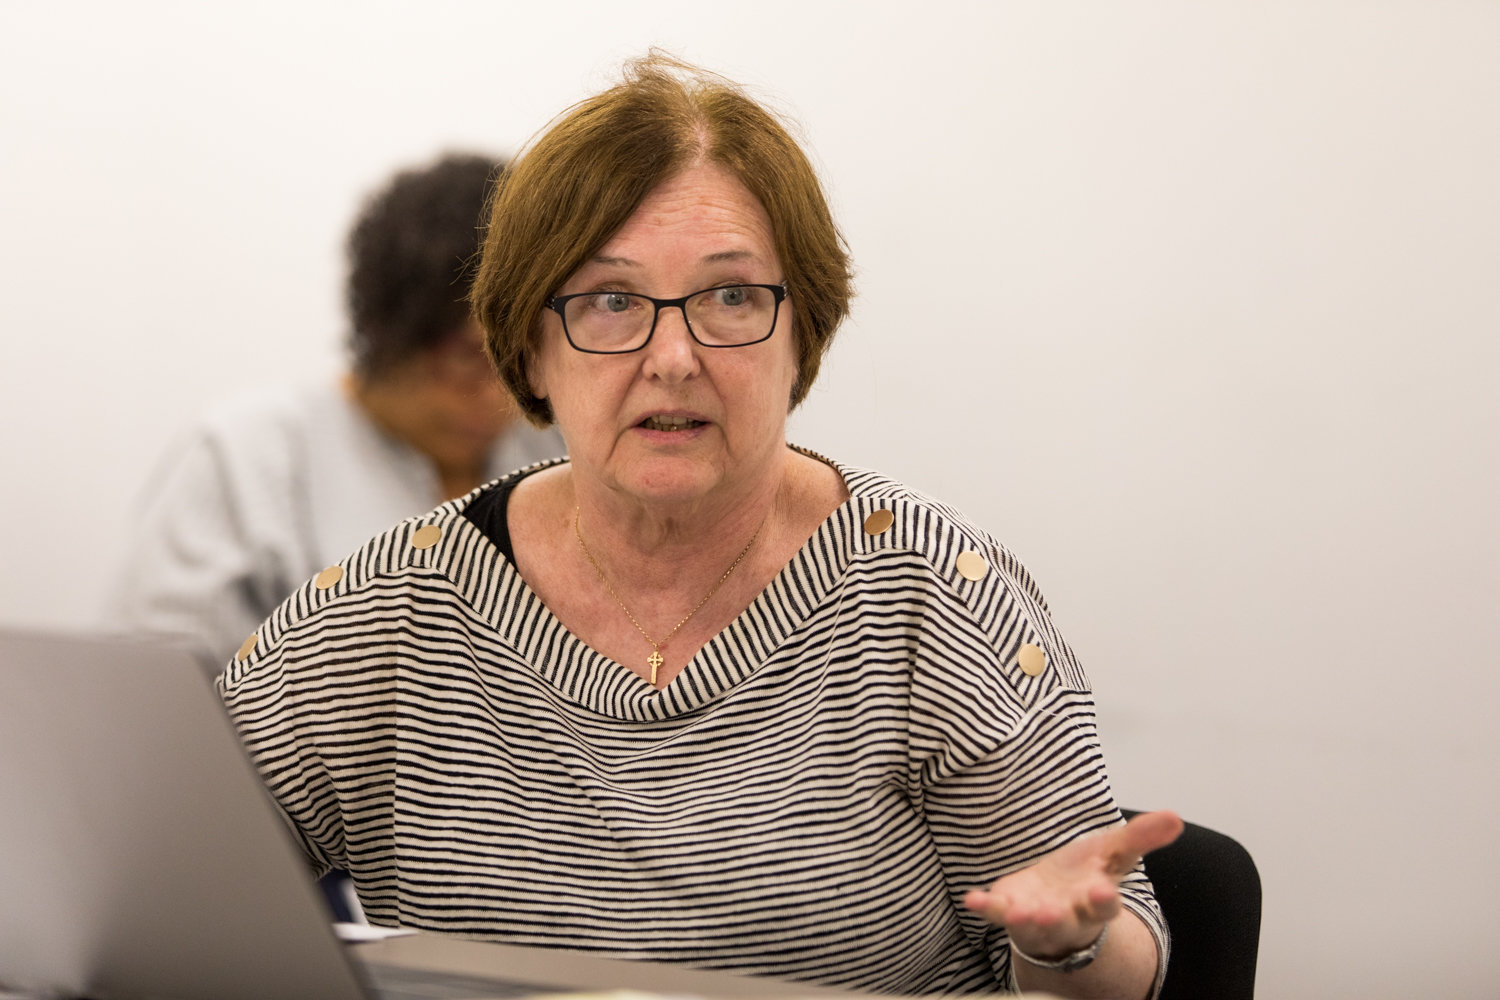 Former Community Board 8 chair Rosemary Ginty offered her thoughts during a conversation about economic development chair Sergio Villaverde's resolution condemning racism, which was eventually passed by the board.